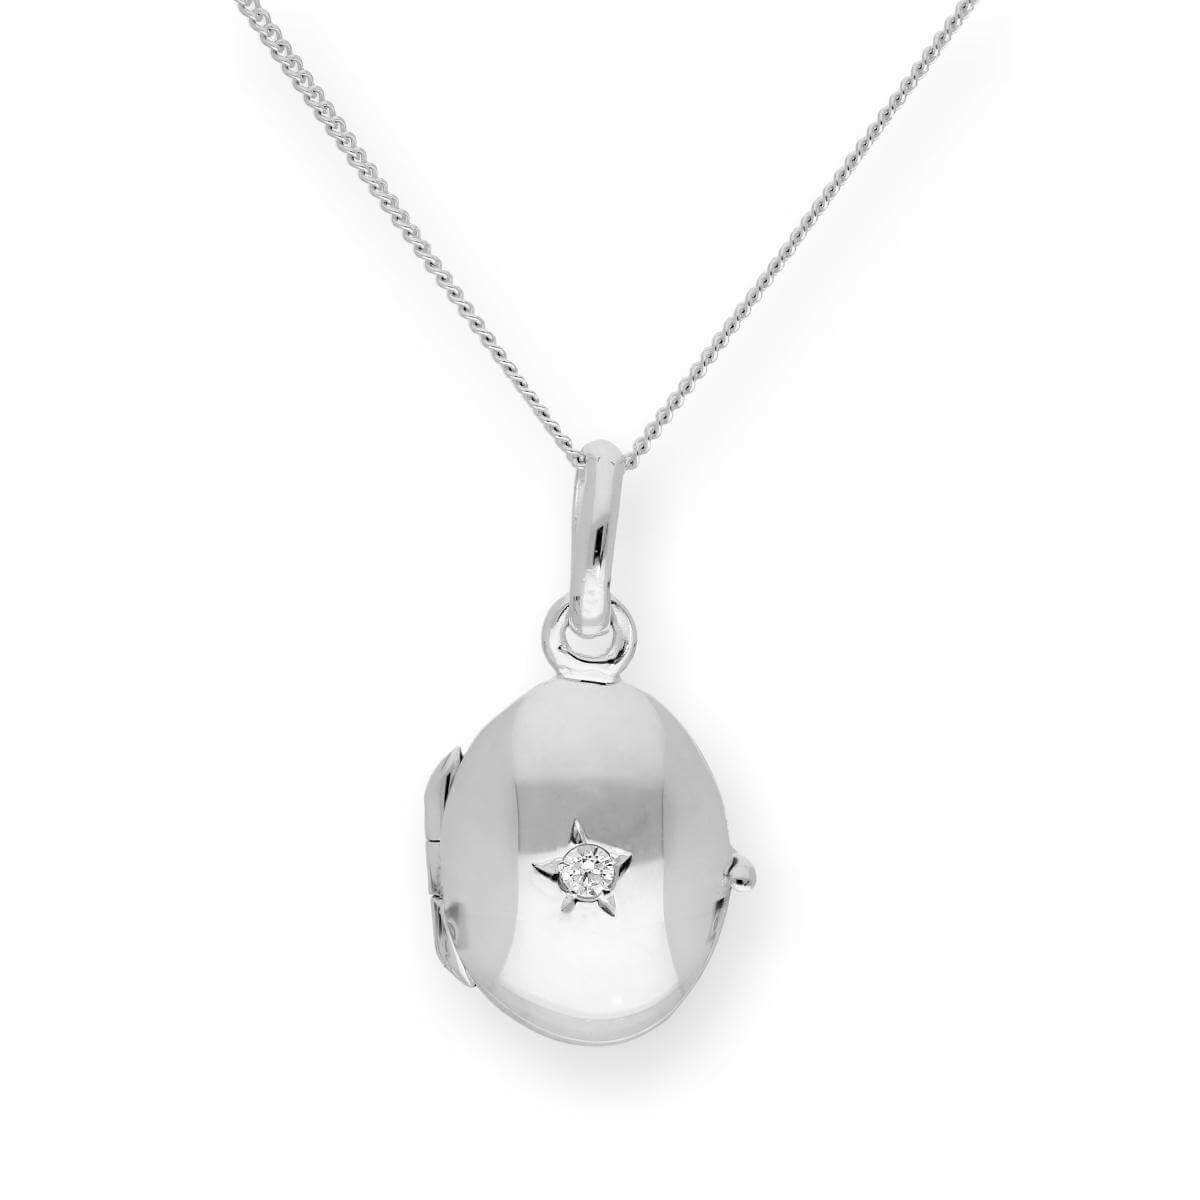 Sterling Silver & CZ Crystal Engravable Oval Locket on Chain 16 - 22 Inches